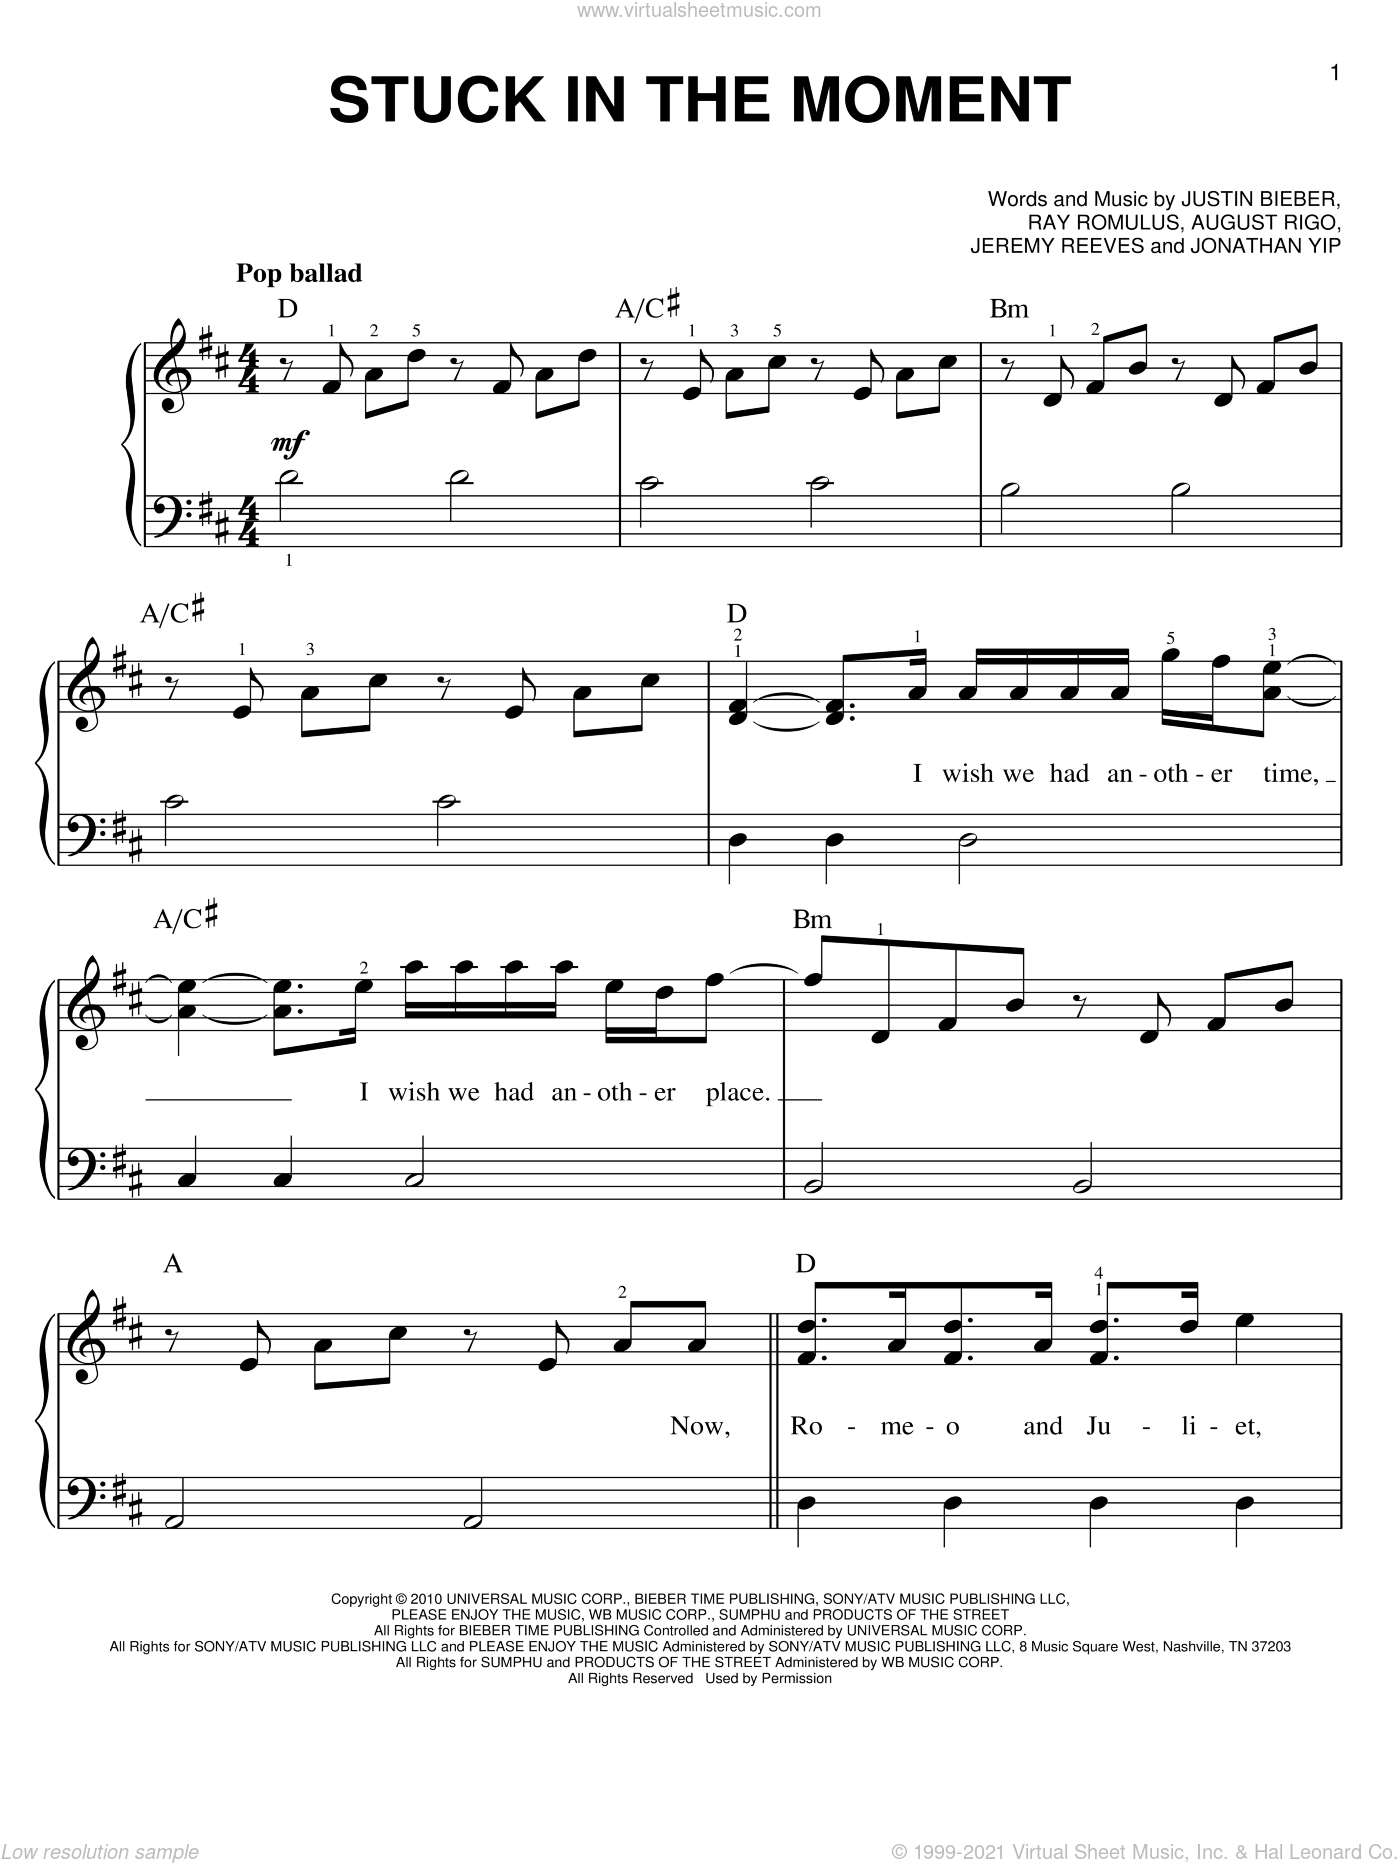 Stuck In The Moment sheet music for piano solo by Justin Bieber, August Rigo, Jeremy Reeves, Jonathan Yip and Ray Romulus, easy skill level